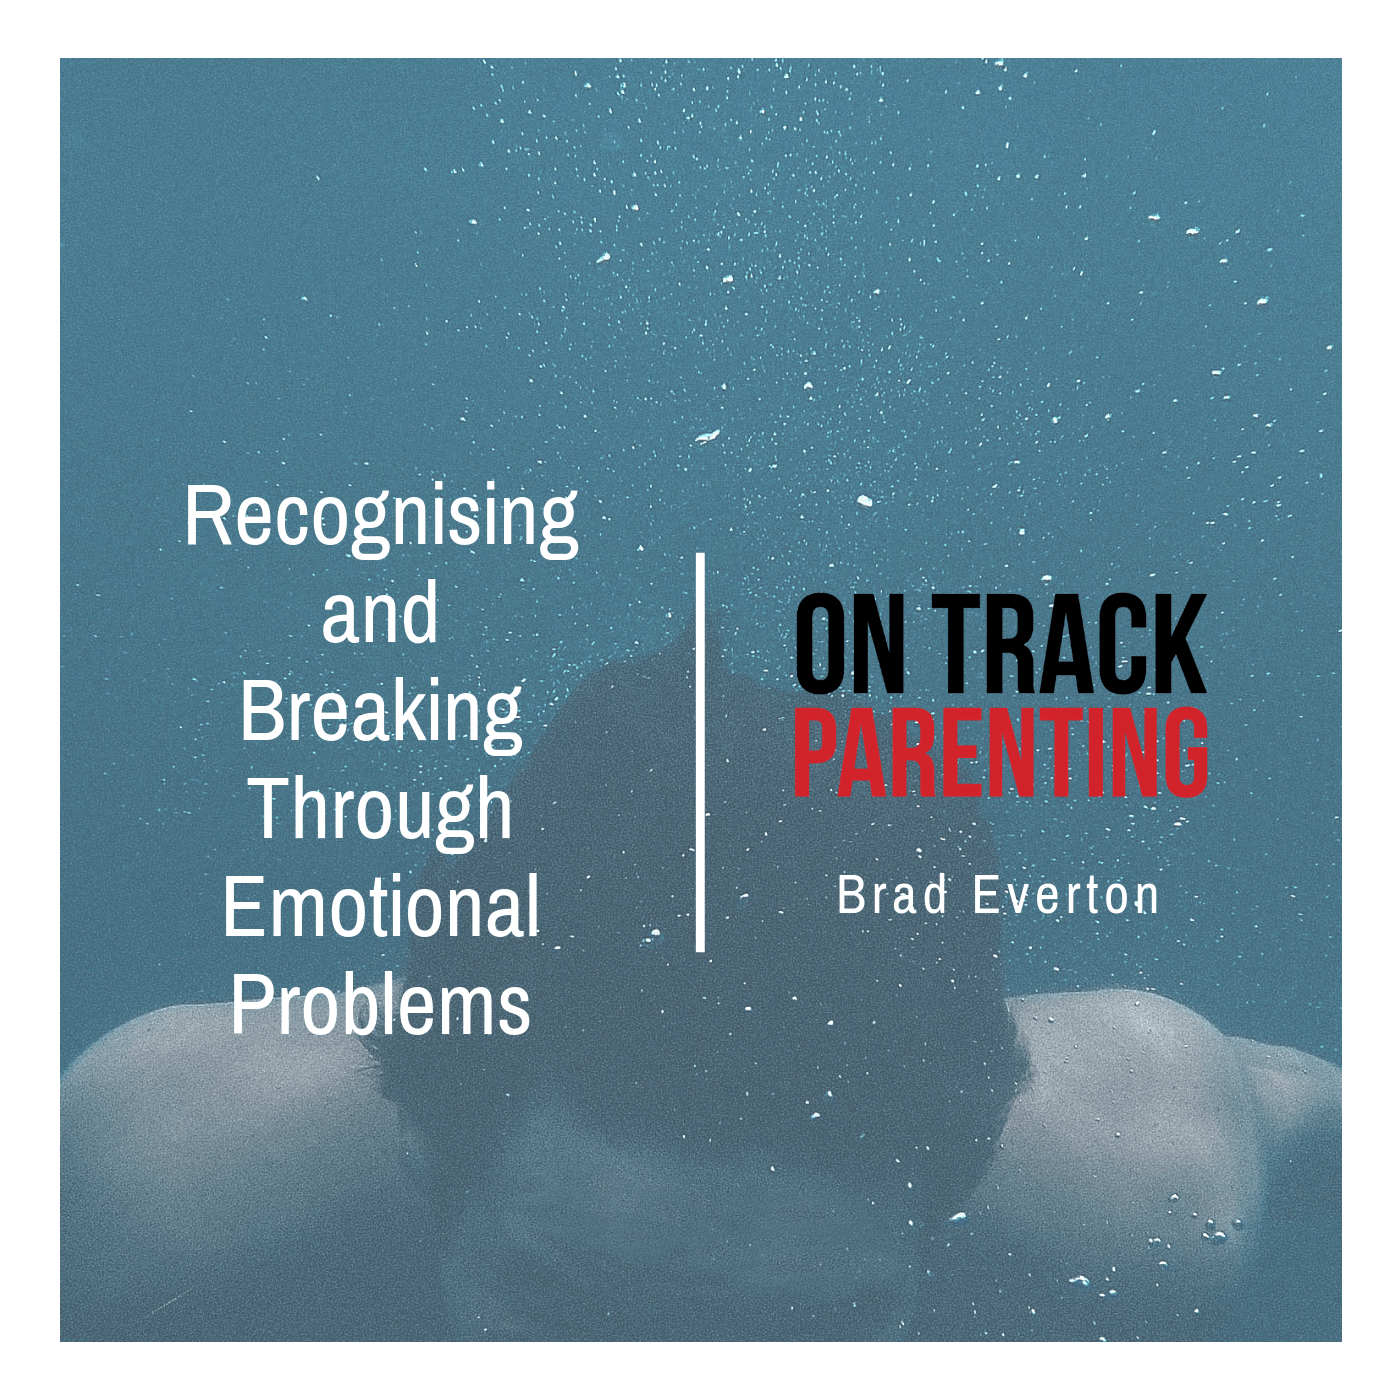 Recognising and Breaking Through Emotional Problems